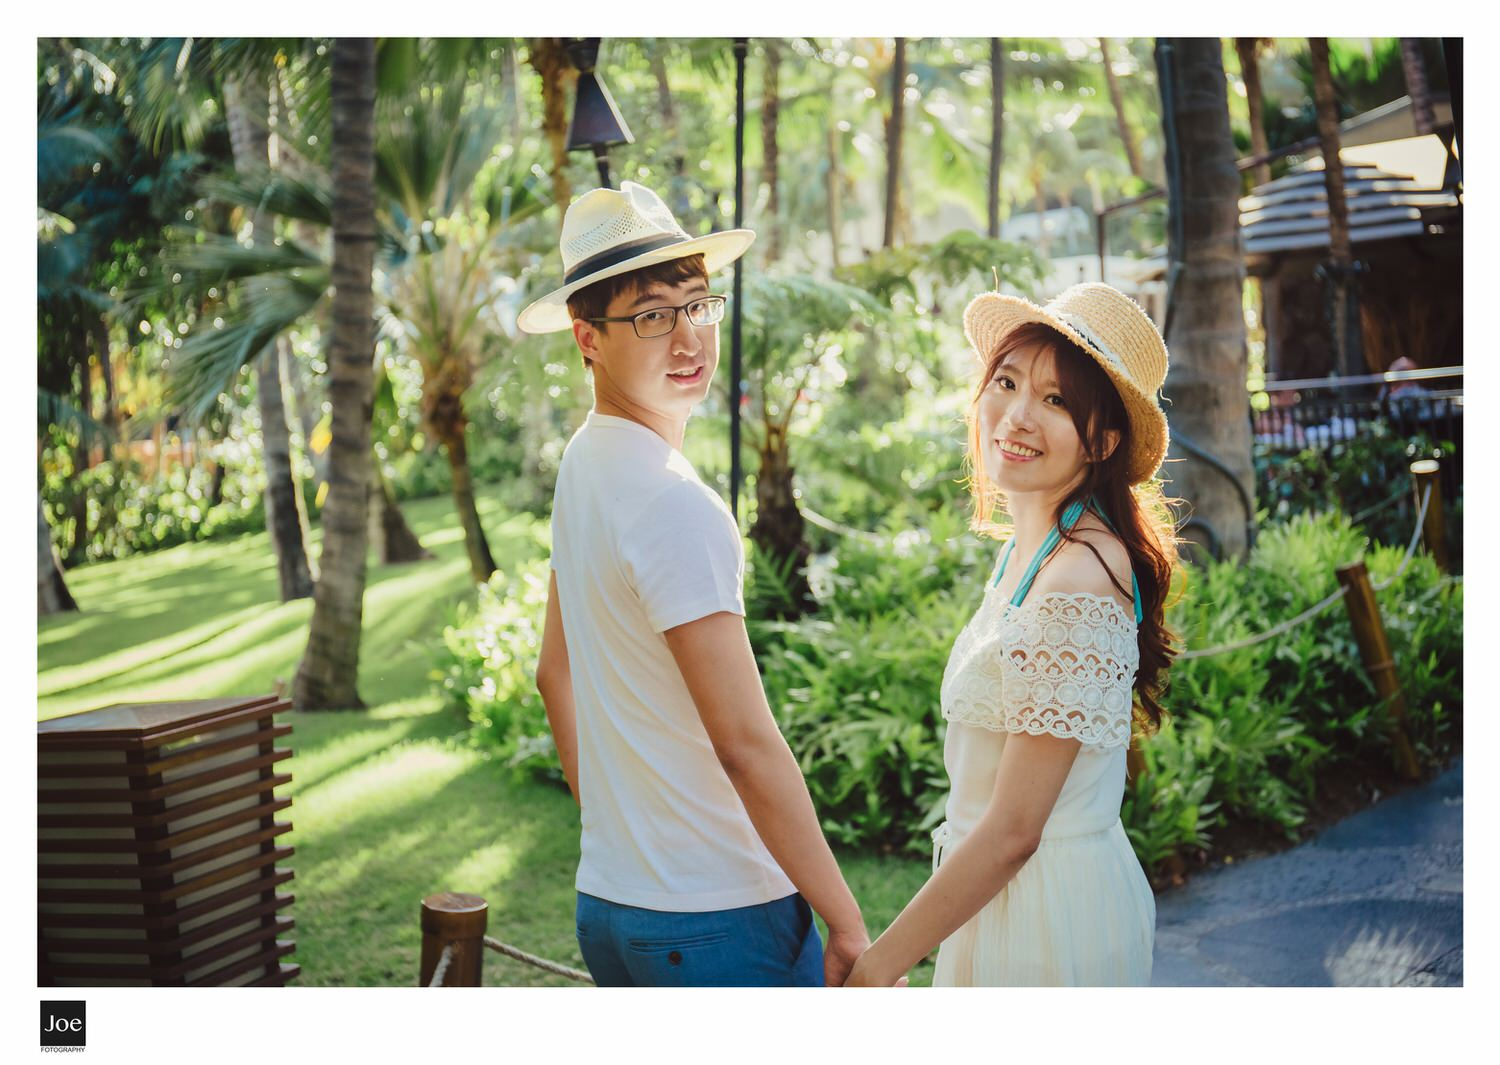 109-royal-hawaiian-center-hawaii-pre-wedding-tiffany-tony-joe-fotography.jpg